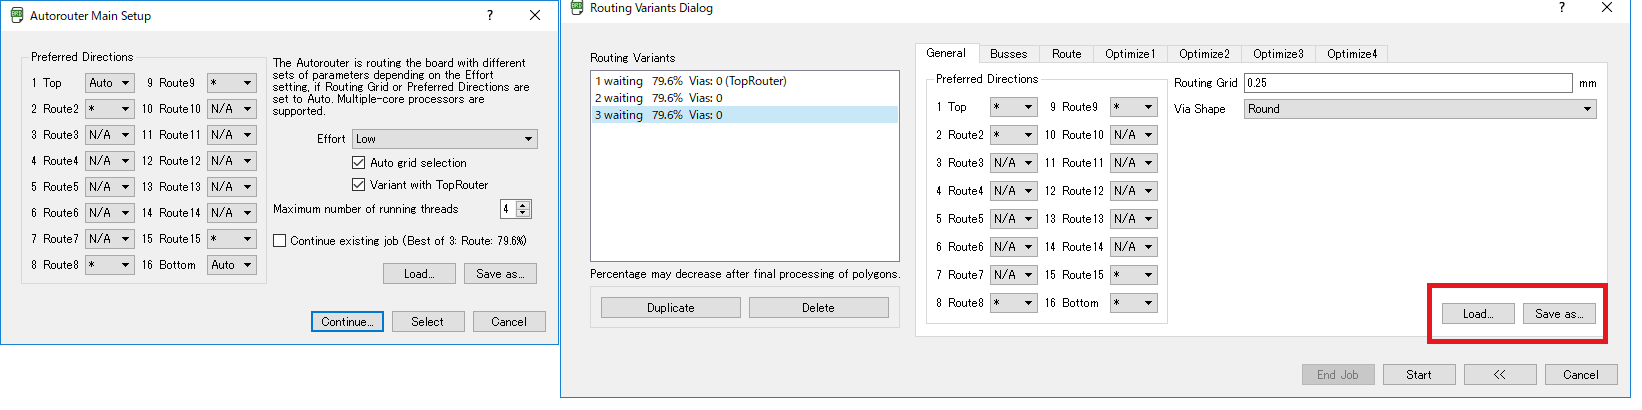 Solved: Autorouter: Can I set up the layer to be routed? - Autodesk ...